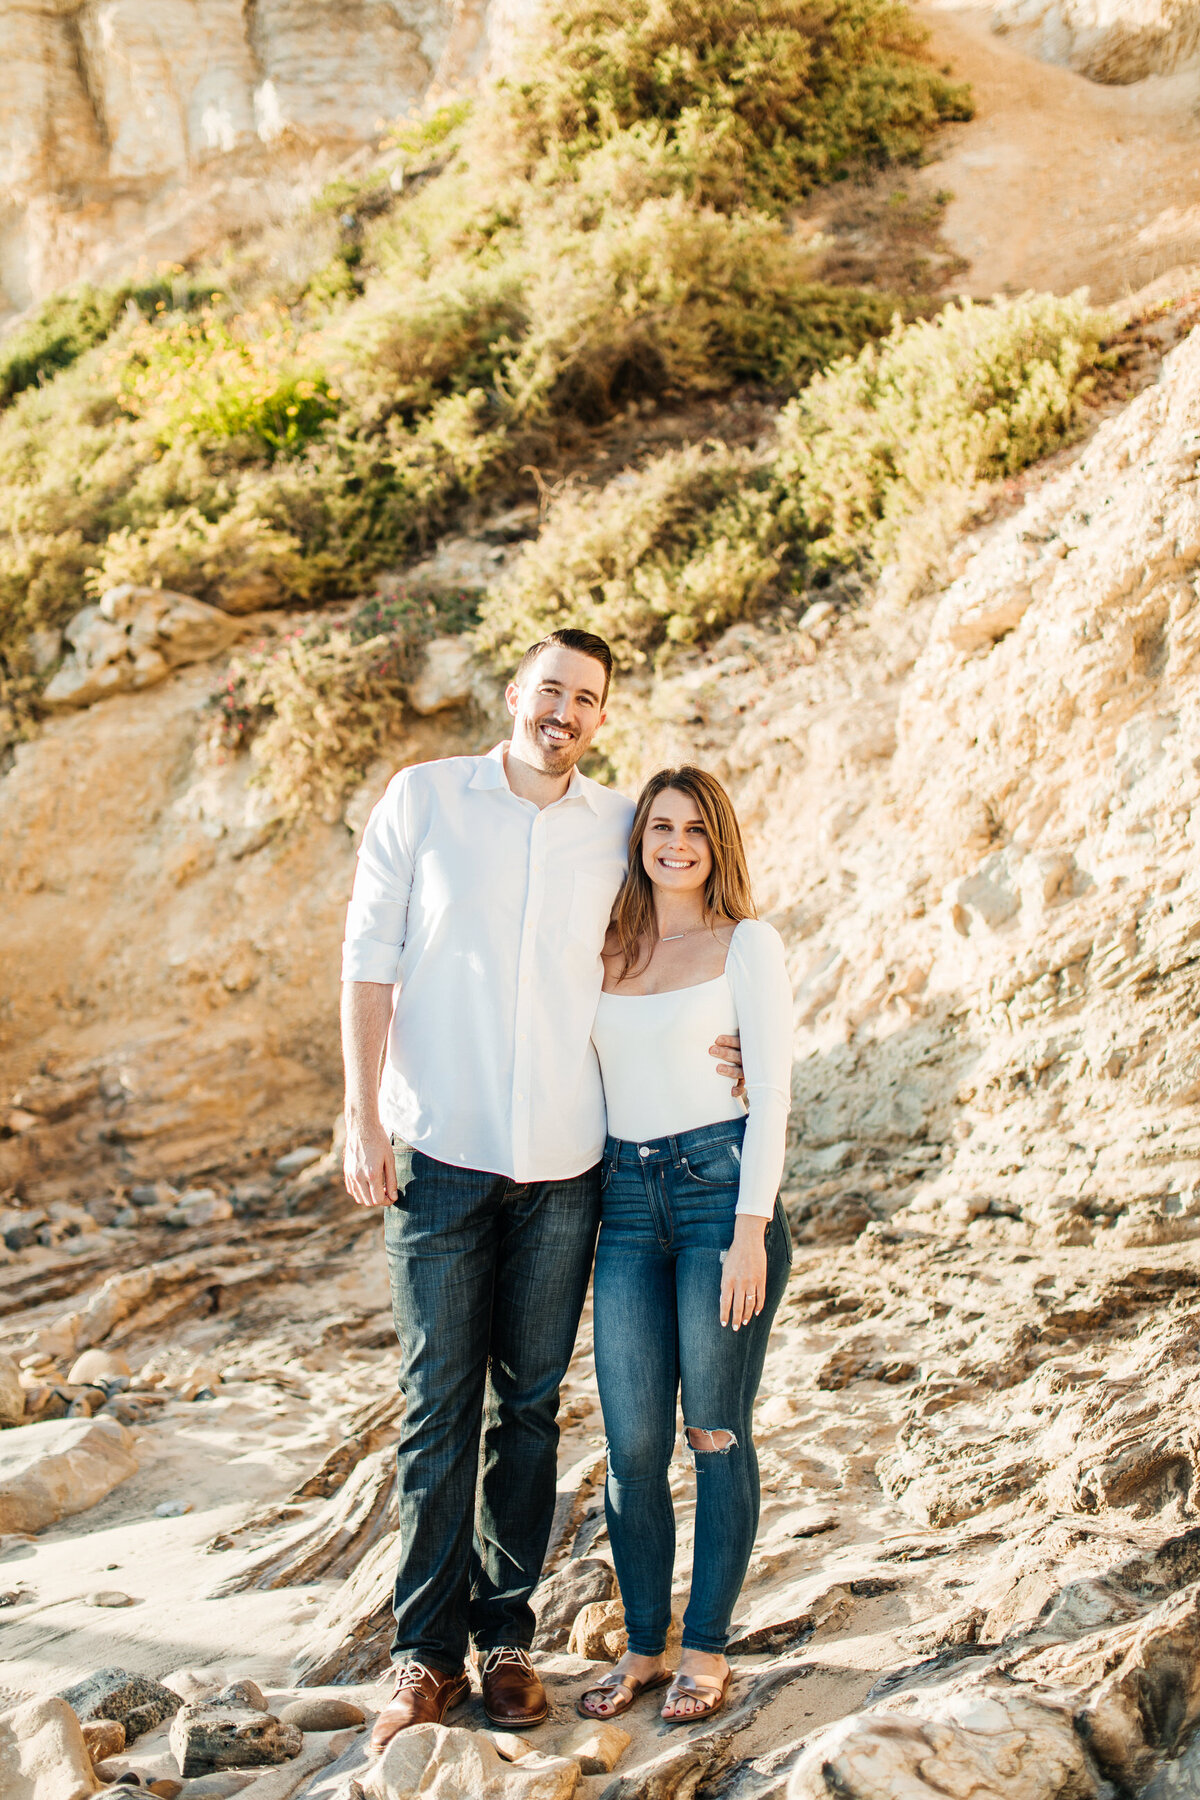 corona-del-mar-engagement-photos-oc-wedding-photographer-erin-marton-photography-10